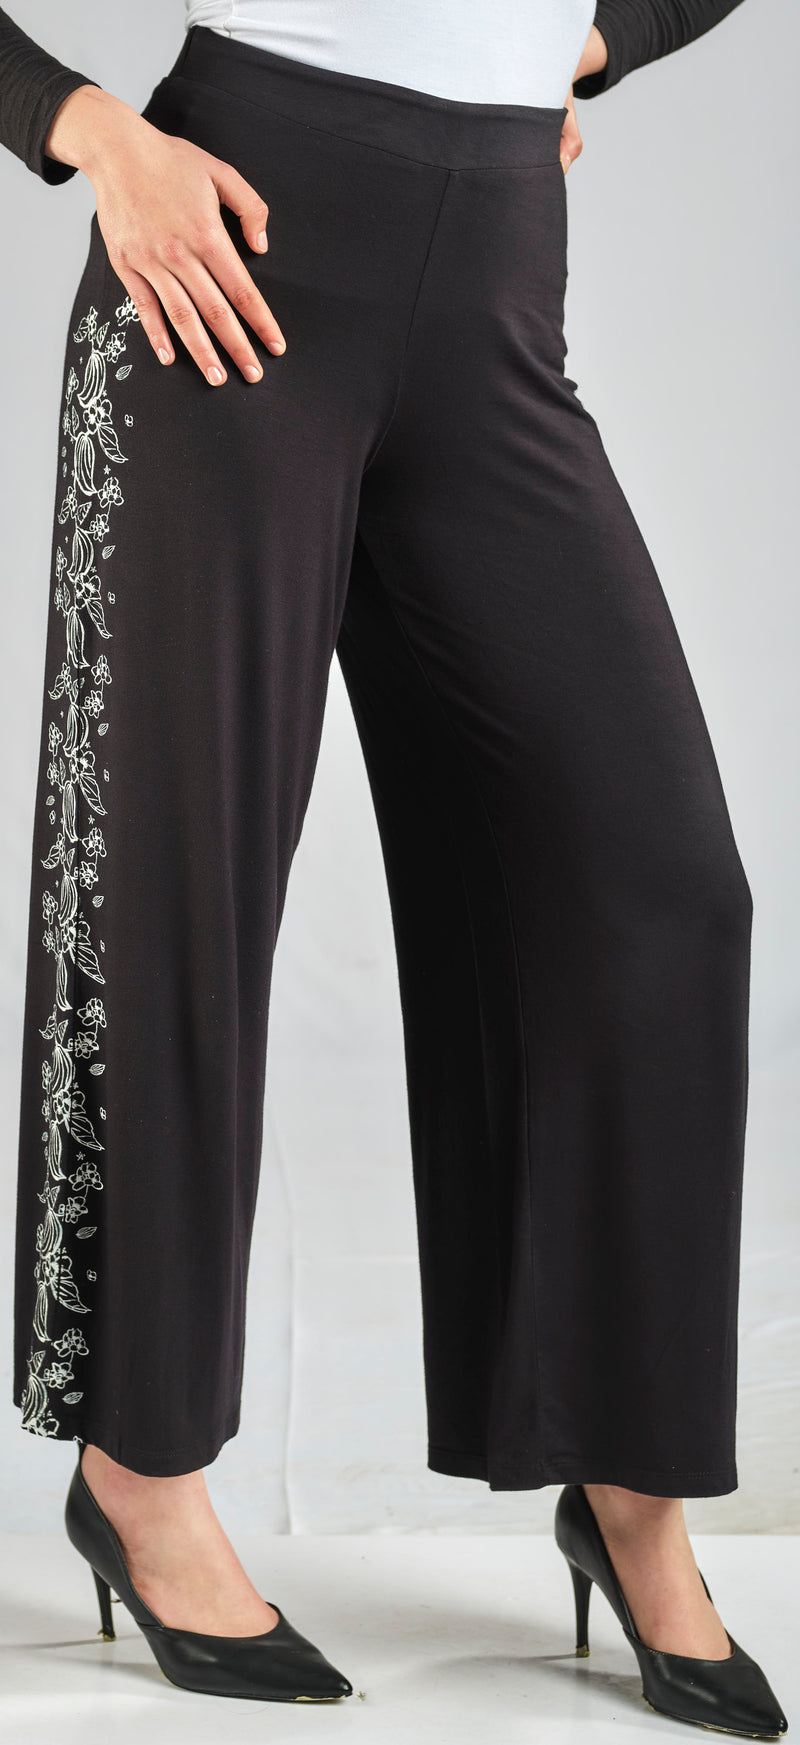 100% NATURAL MODAL PANTS WITH SIDE PRINT AND AN ELASTIC WAIST FOR EXTRA COMFORT